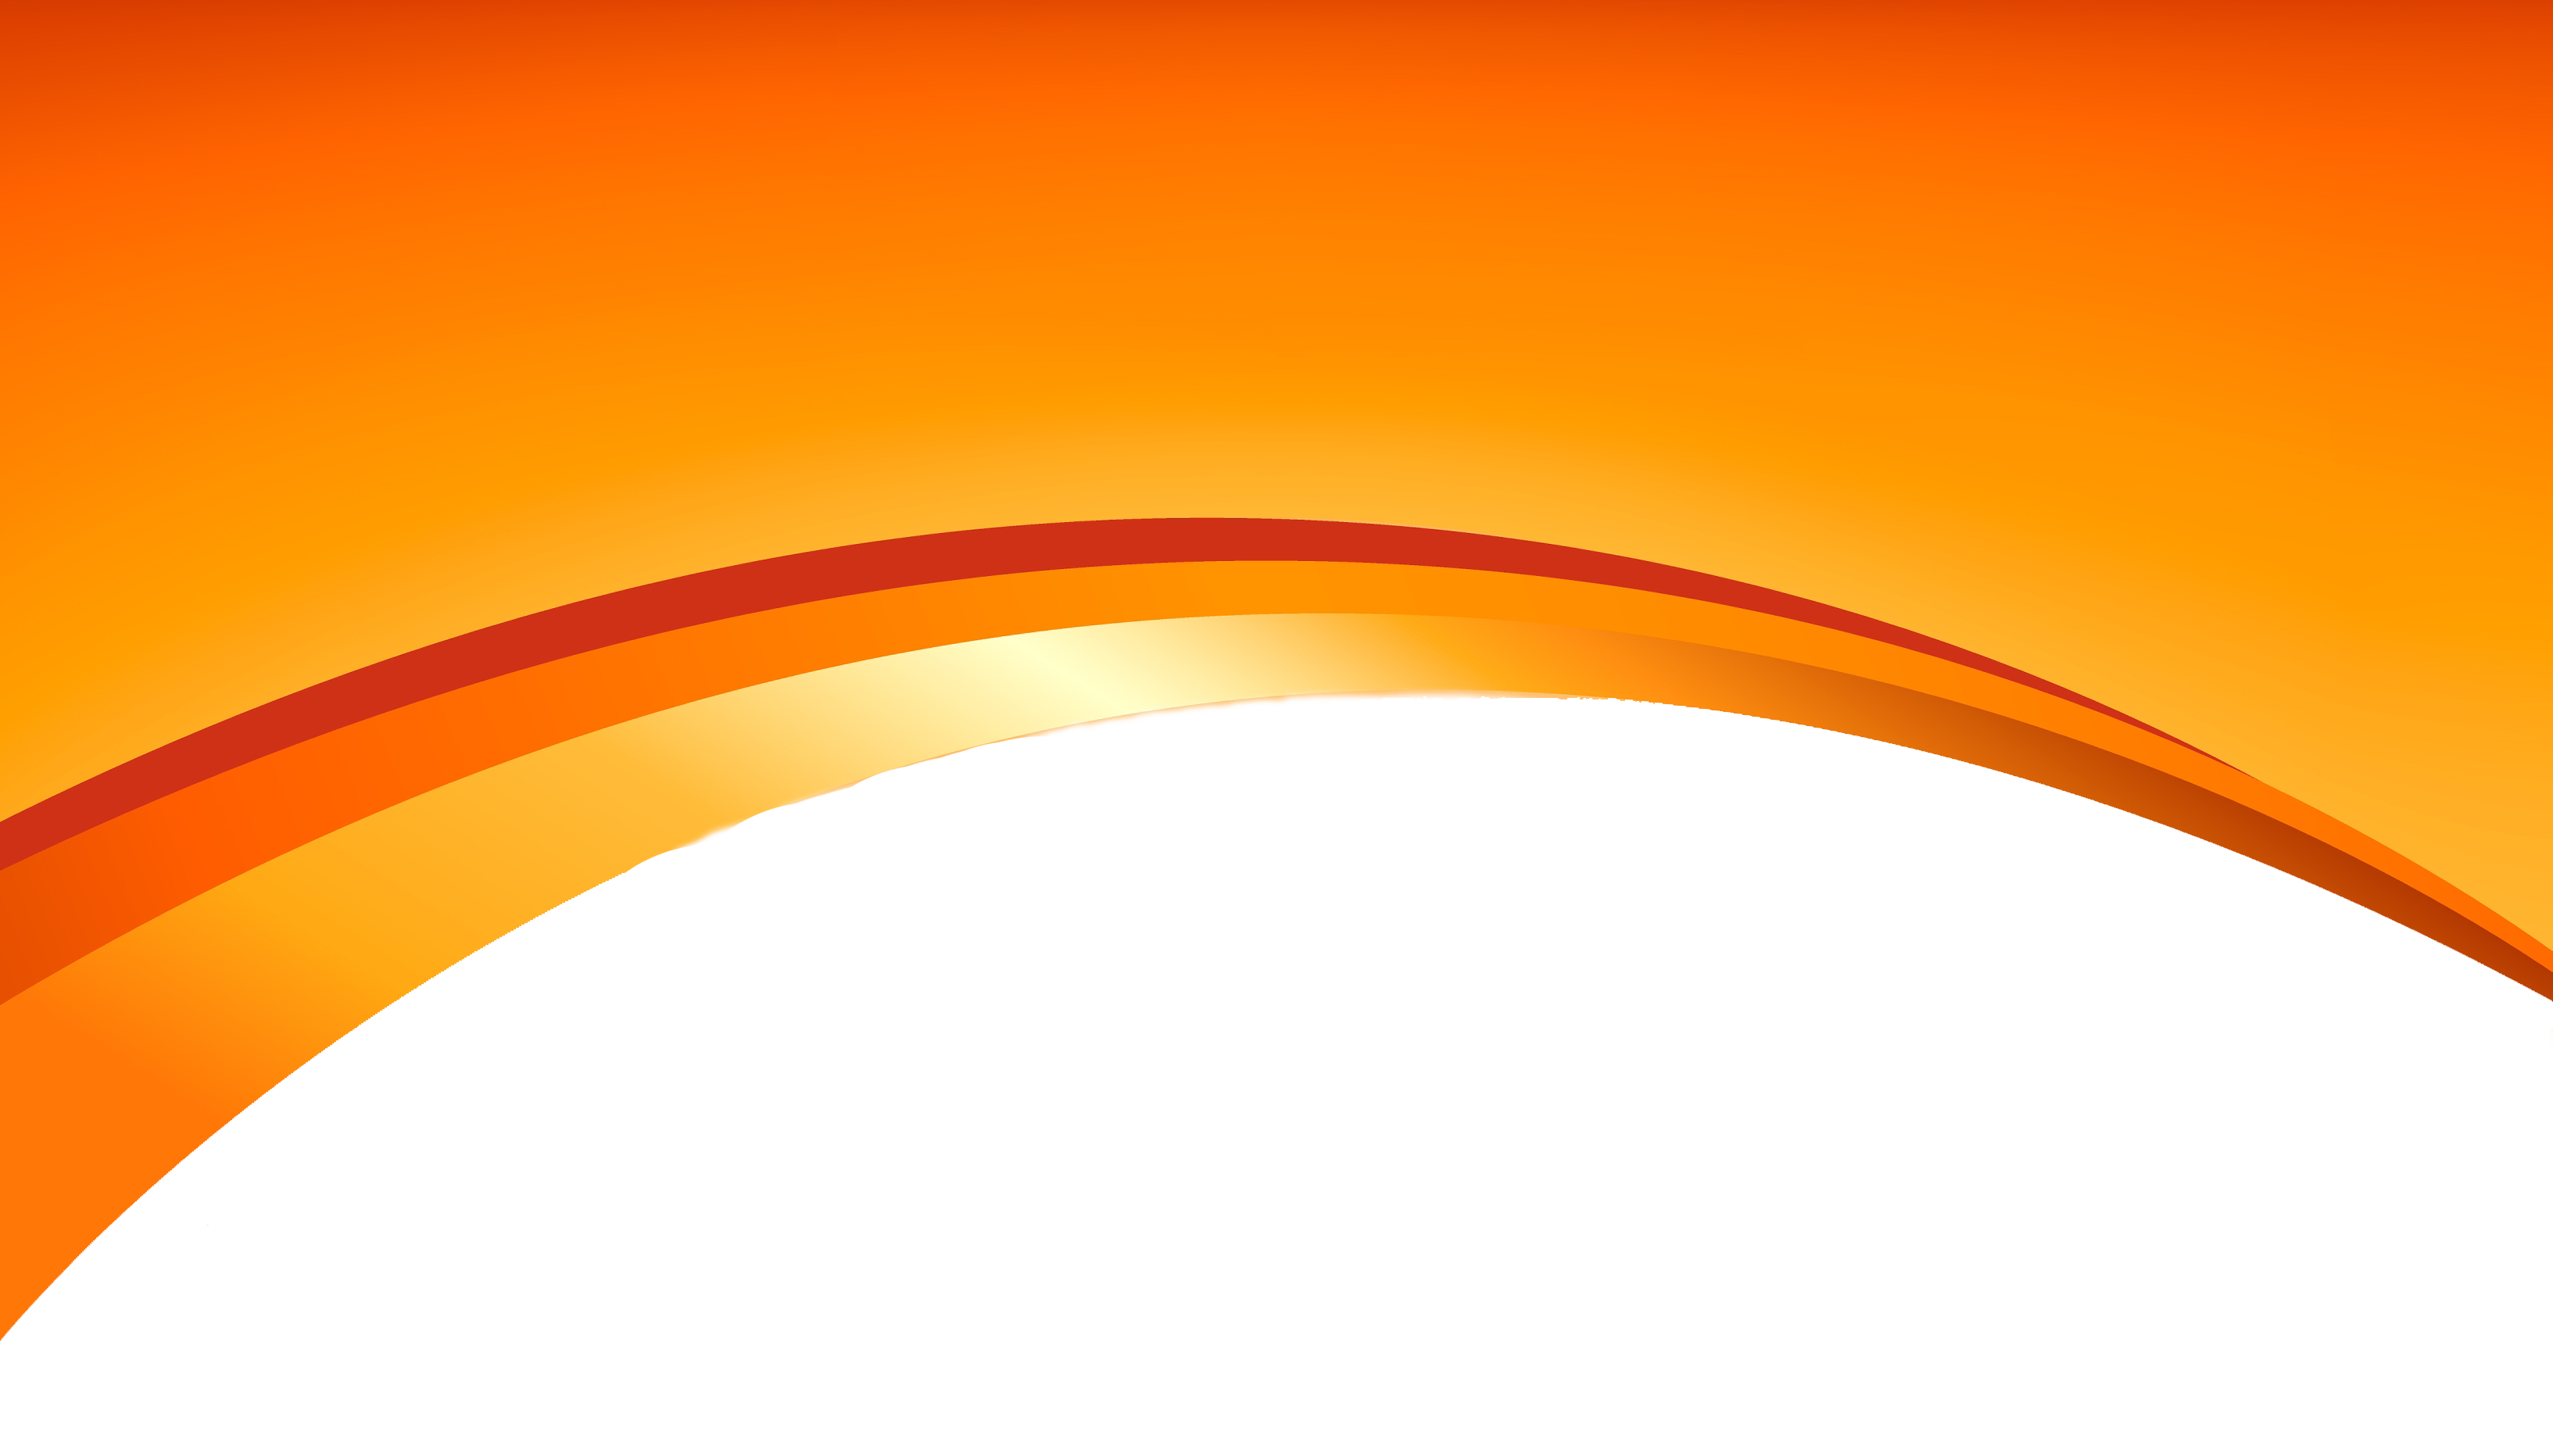 Background images png. Orange abstract lines transparent